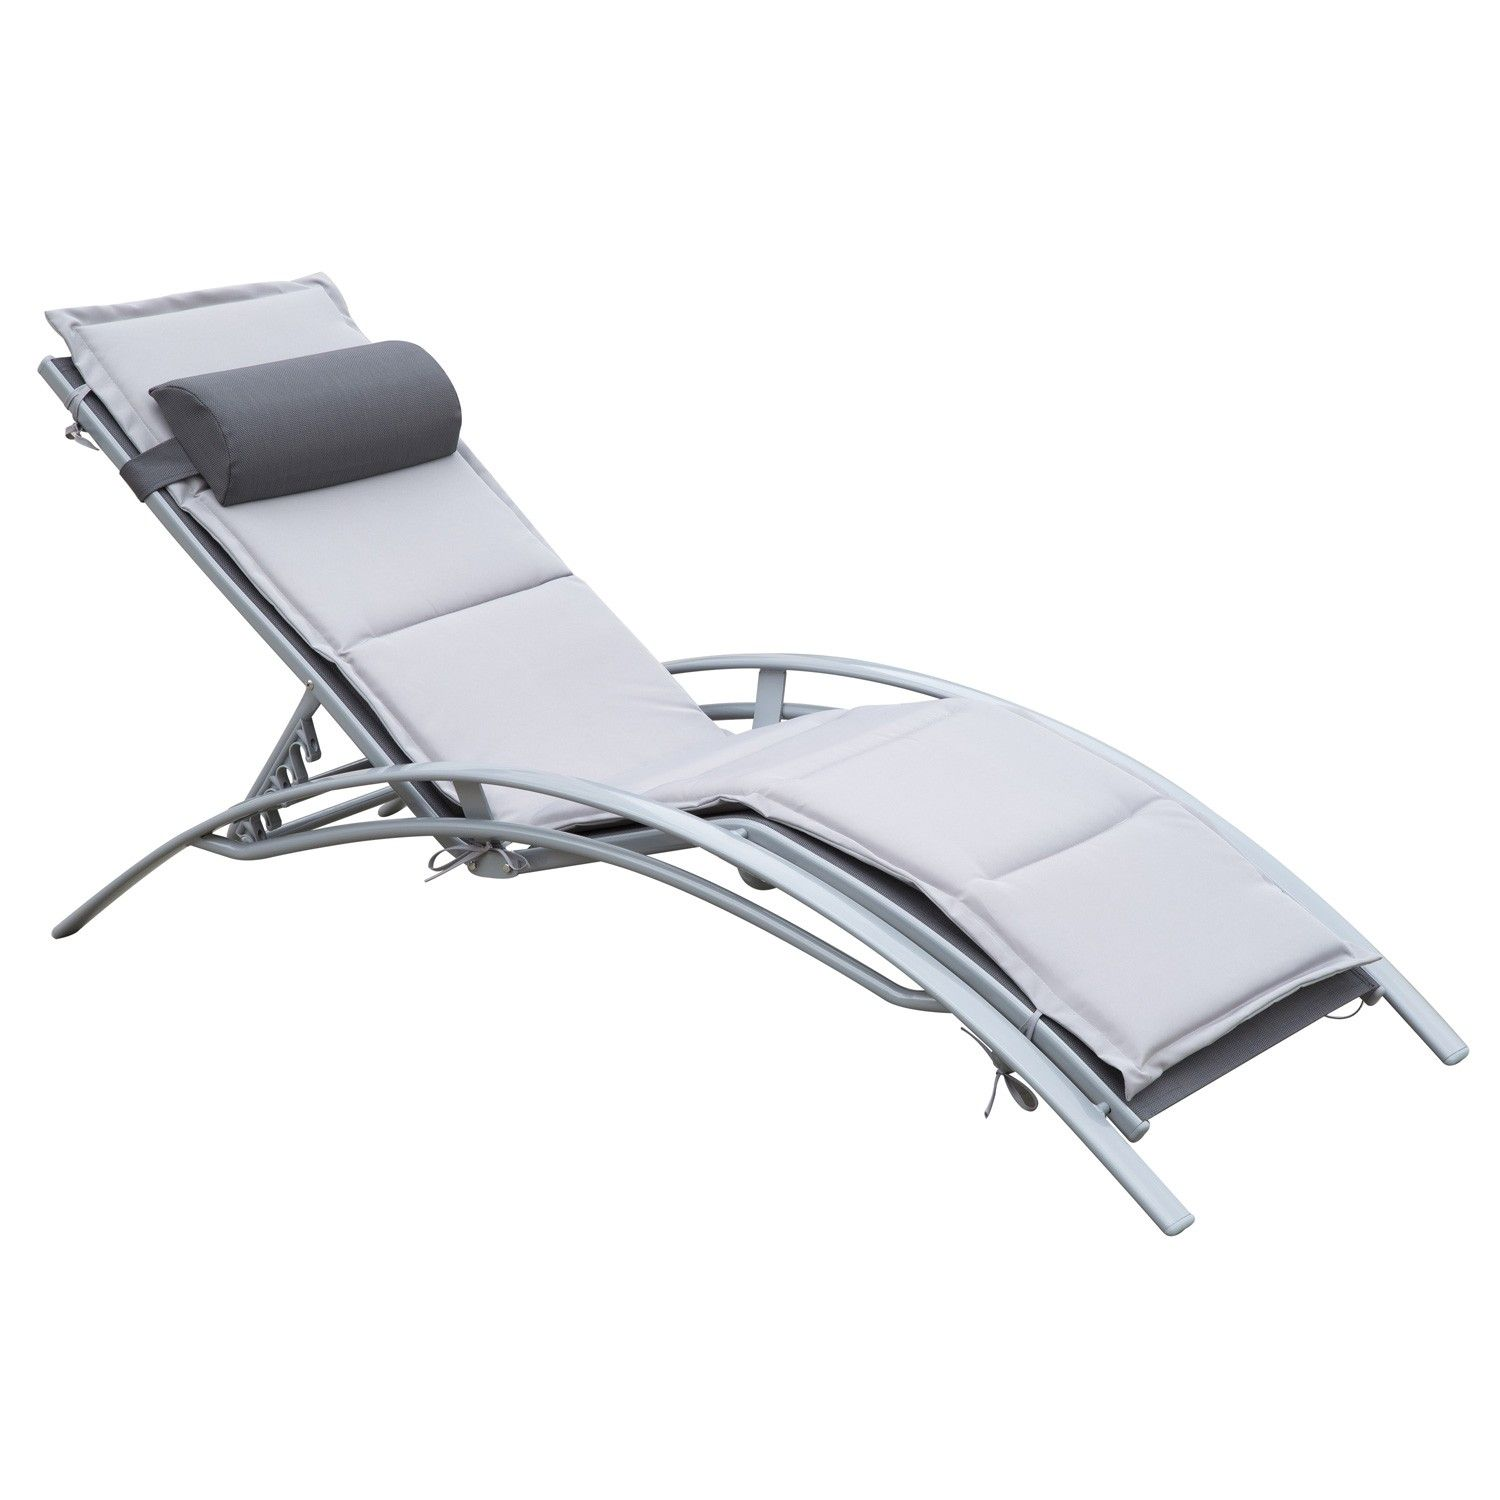 Outdoor Pool Lounge Sessel Ecke Chaise Lounge Sessel Bunt Chaise